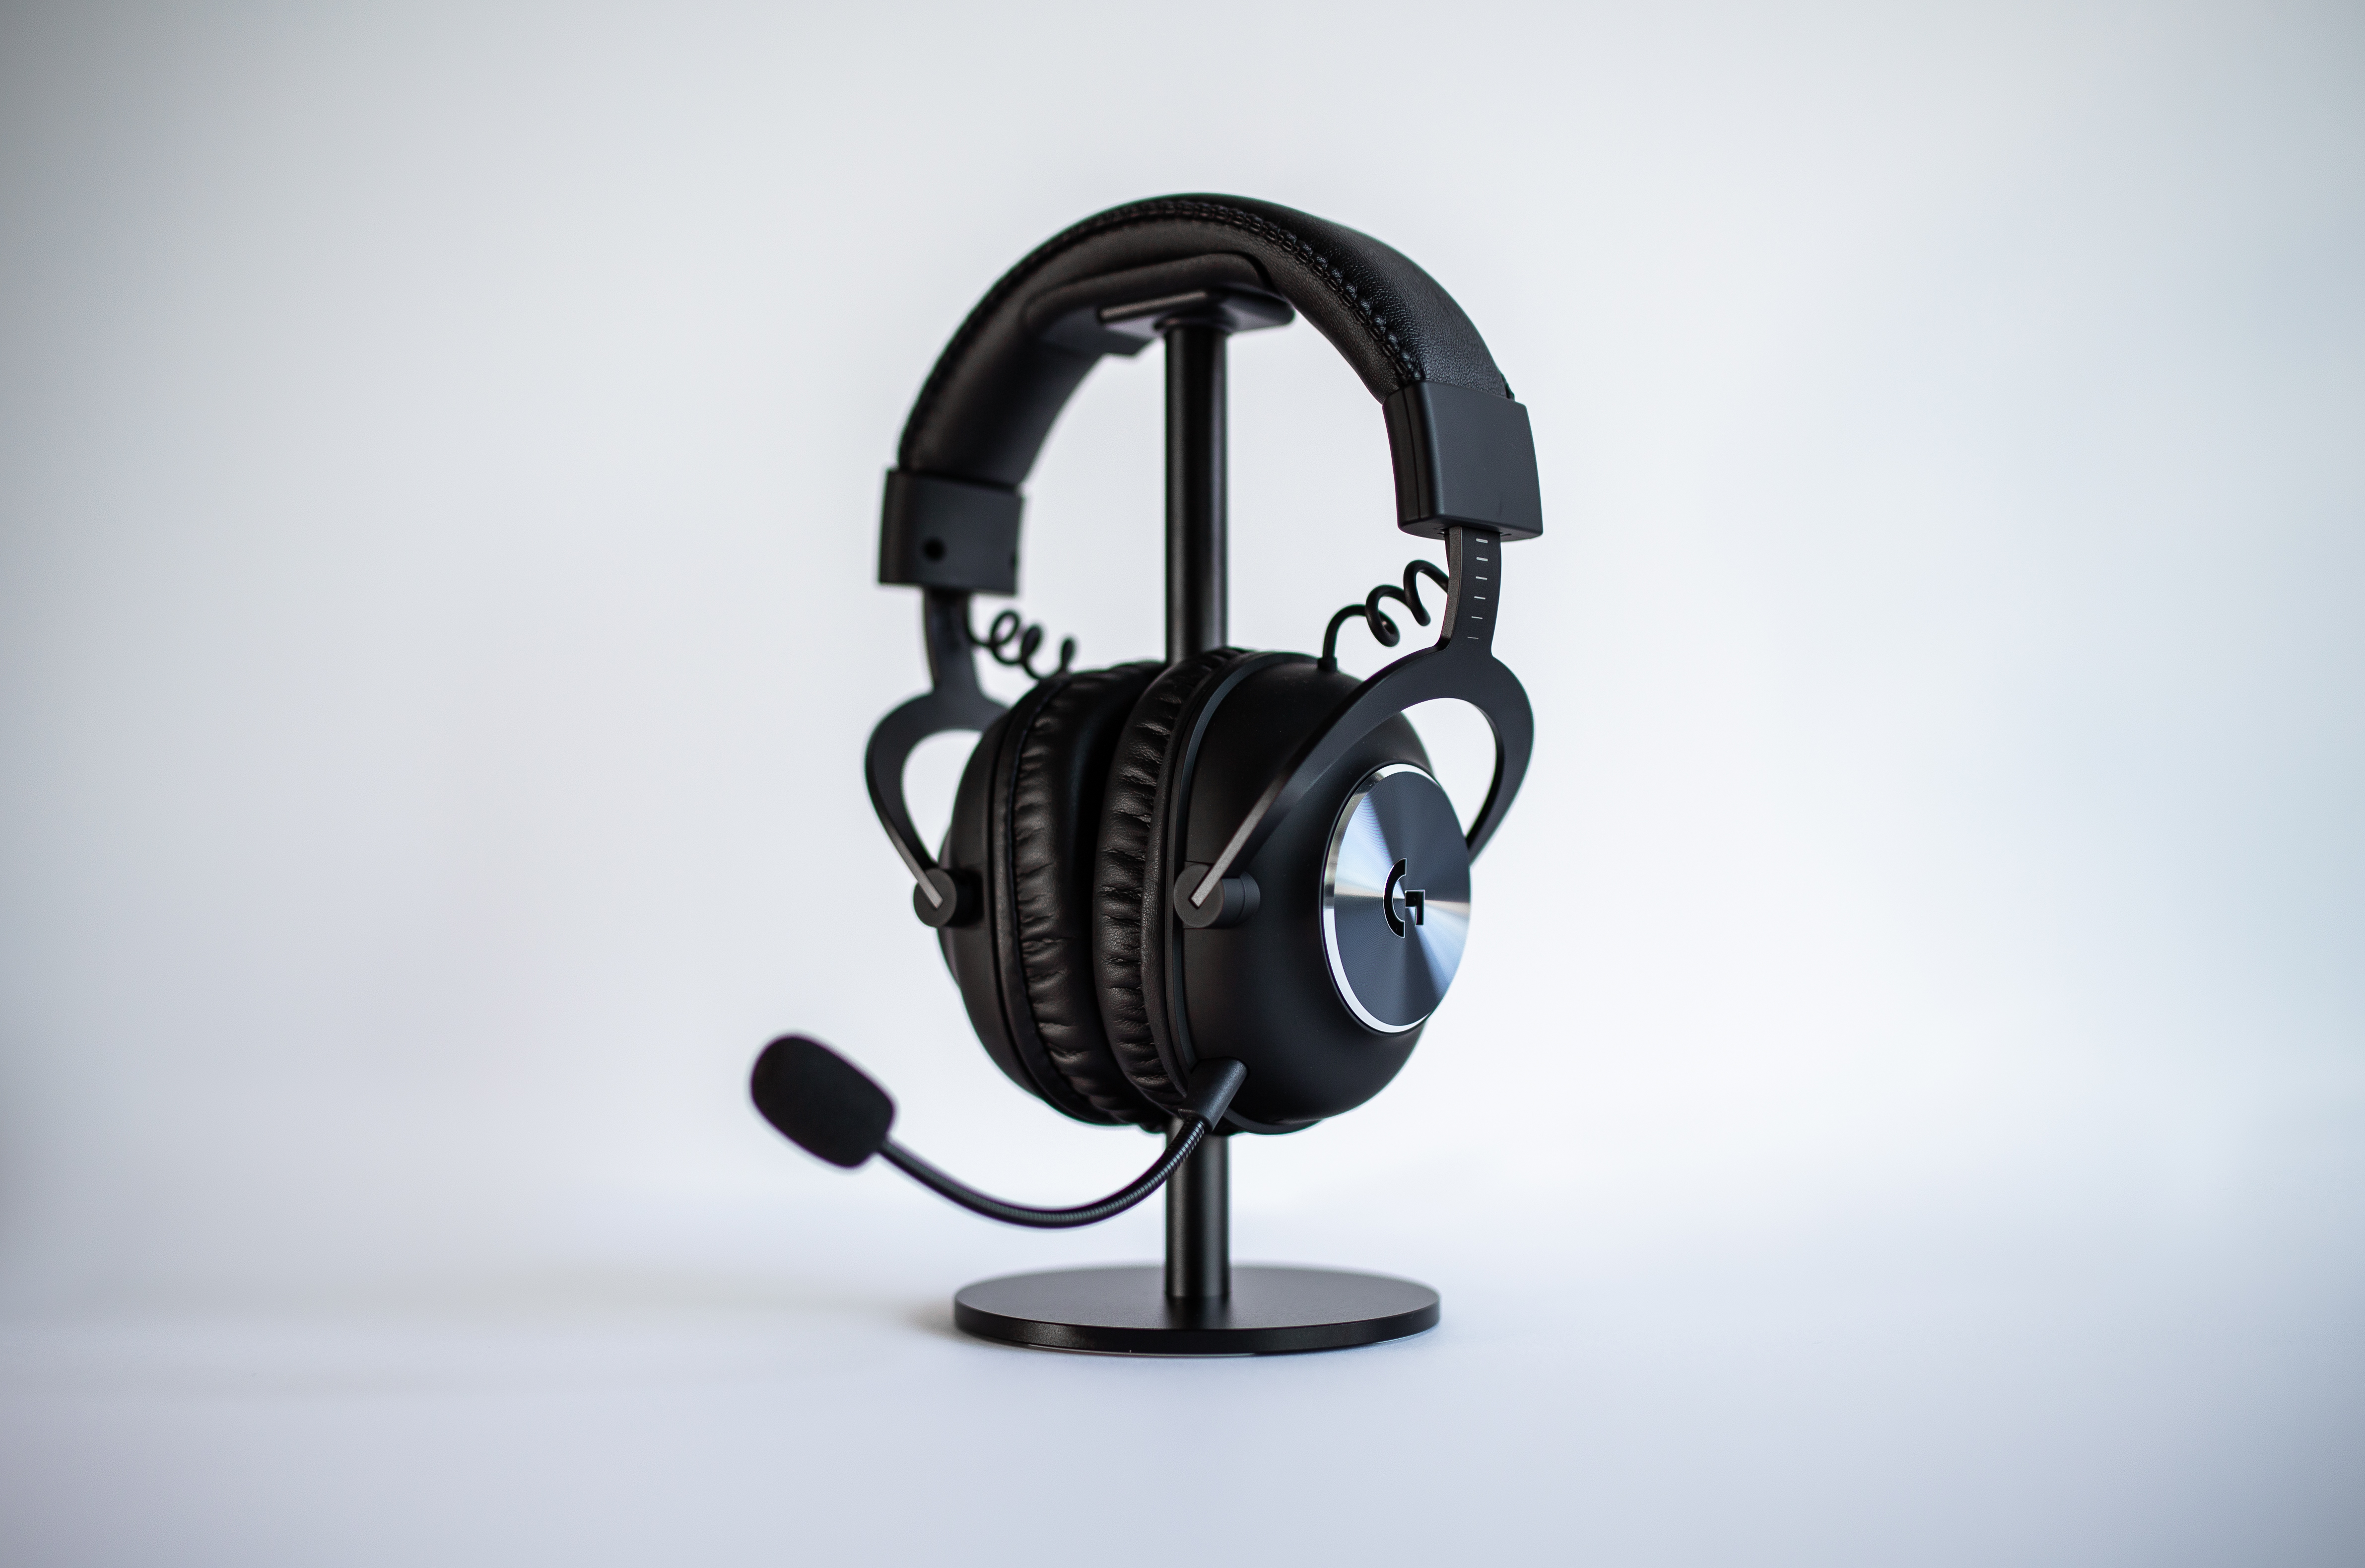 Logitech G Launches Pro X Wireless Gaming Headset Business Wire